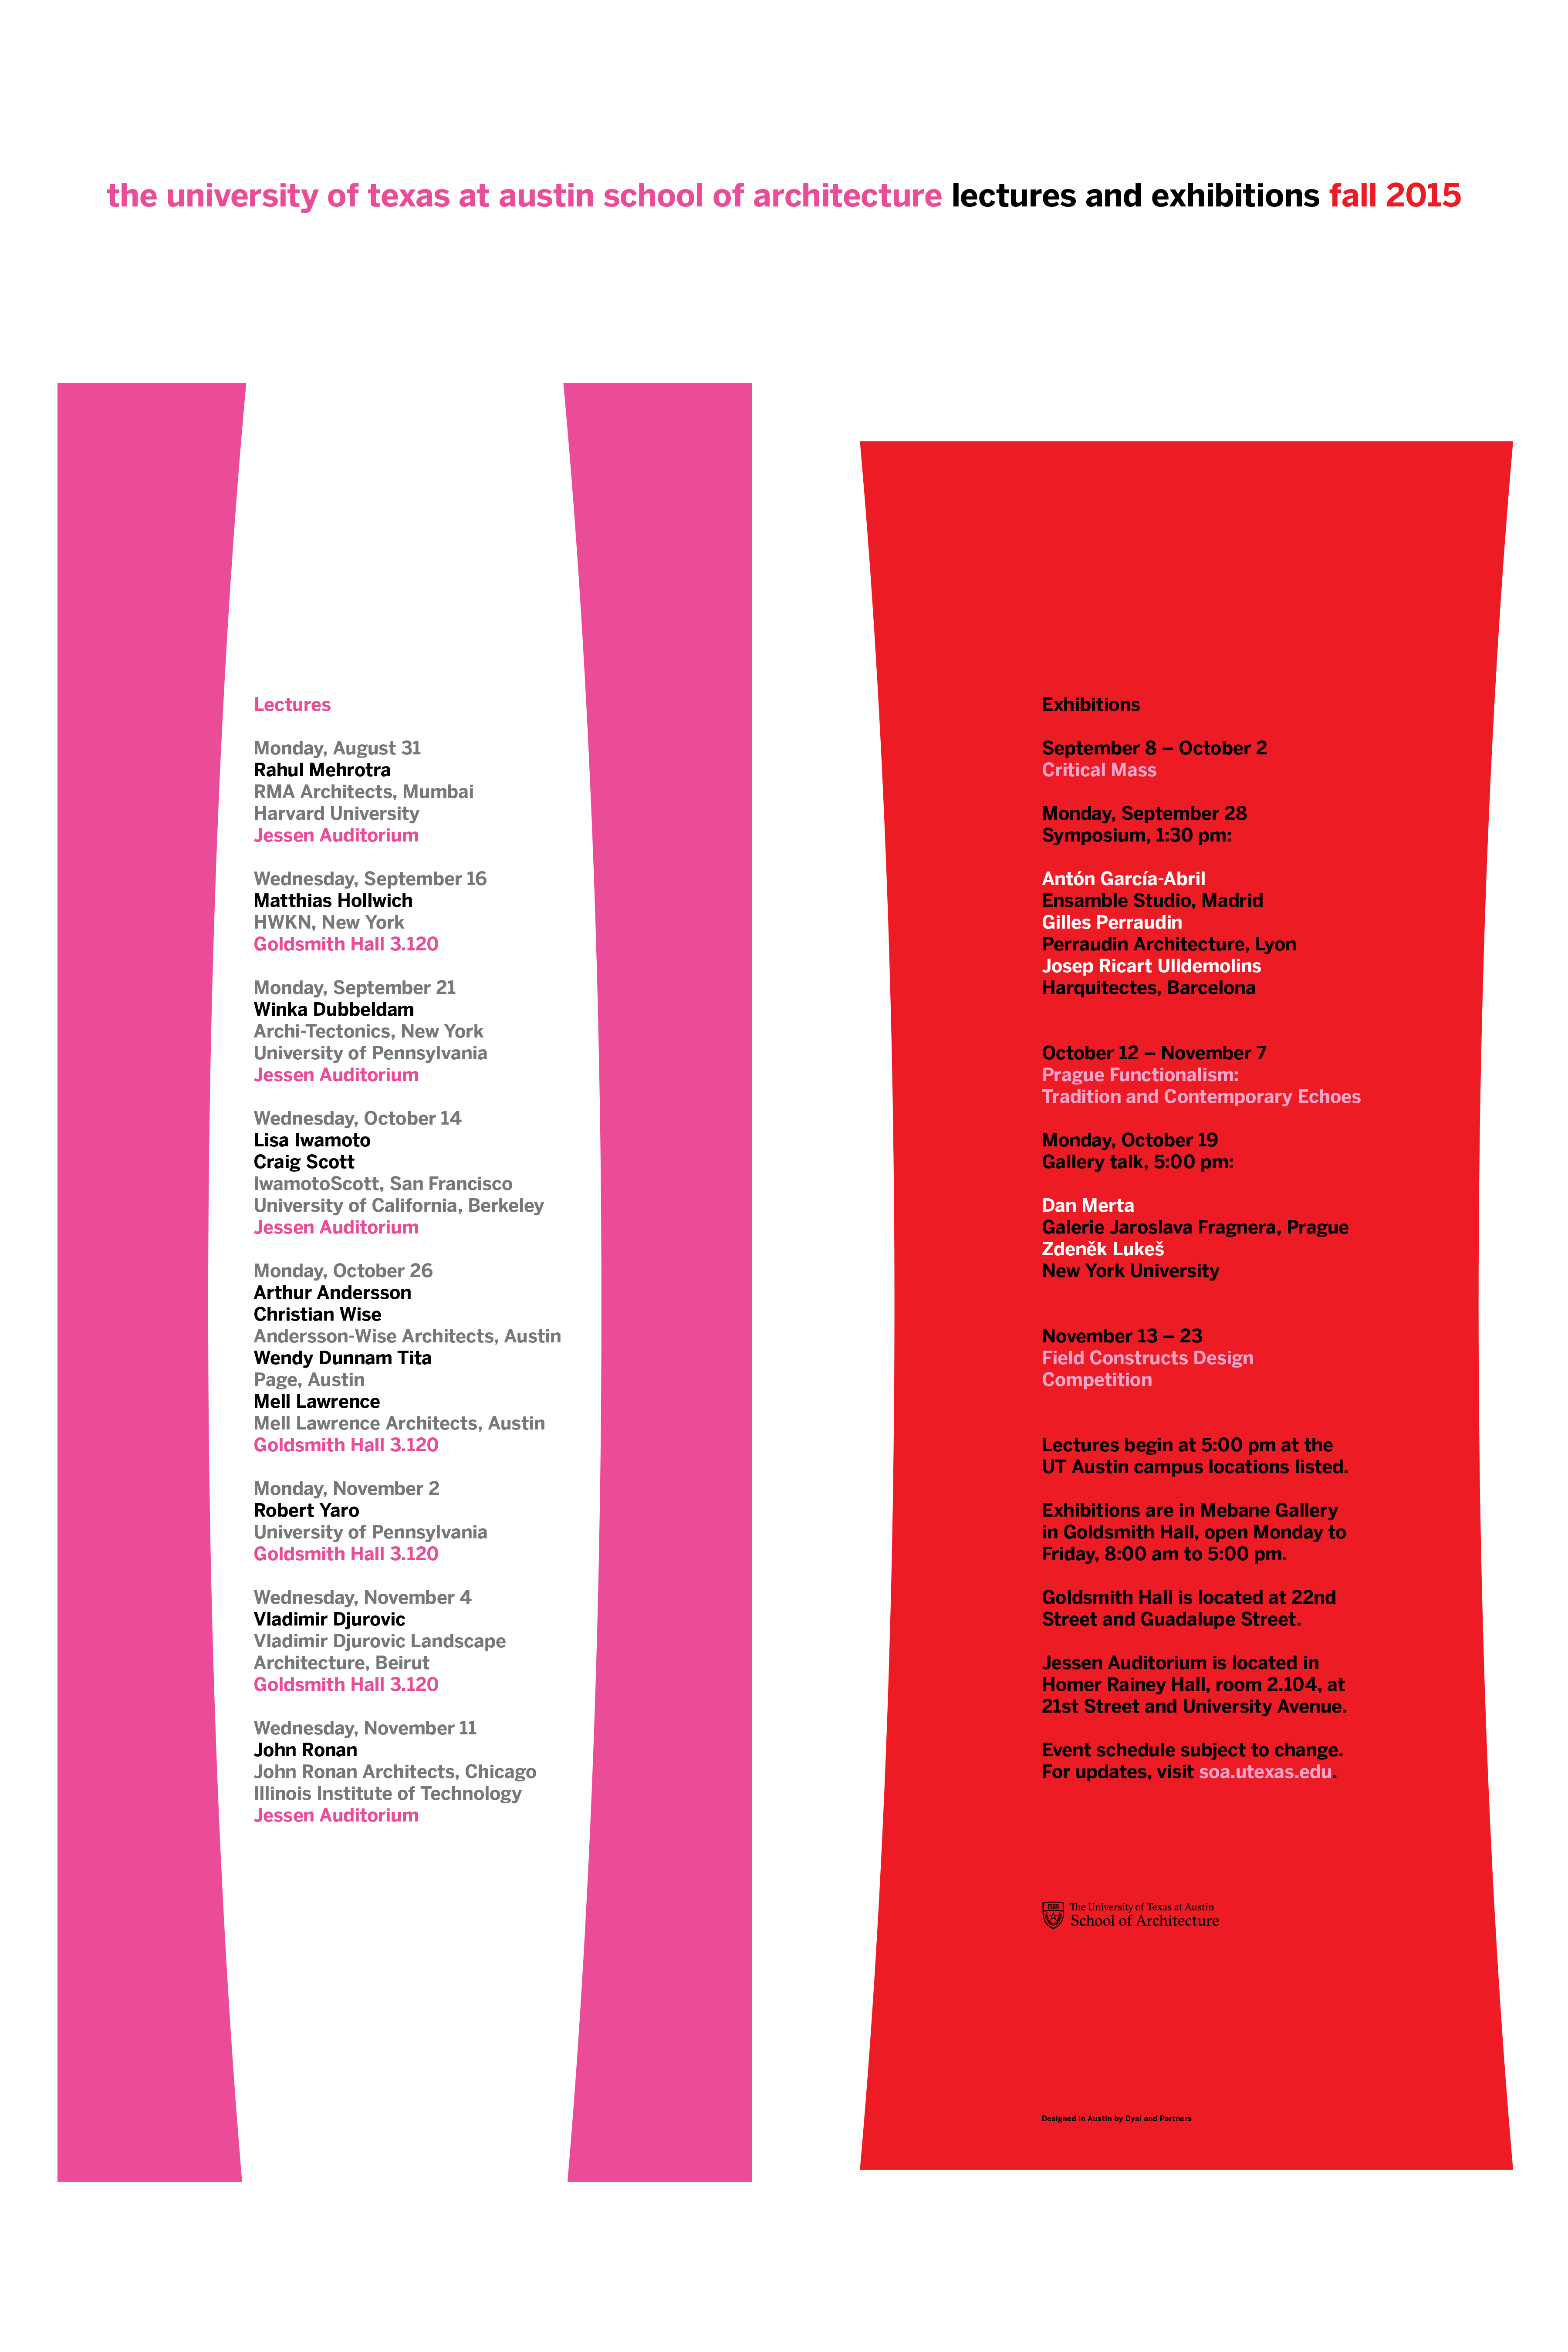 Fall 2015 Lectures and Exhibitions  @UTSOA